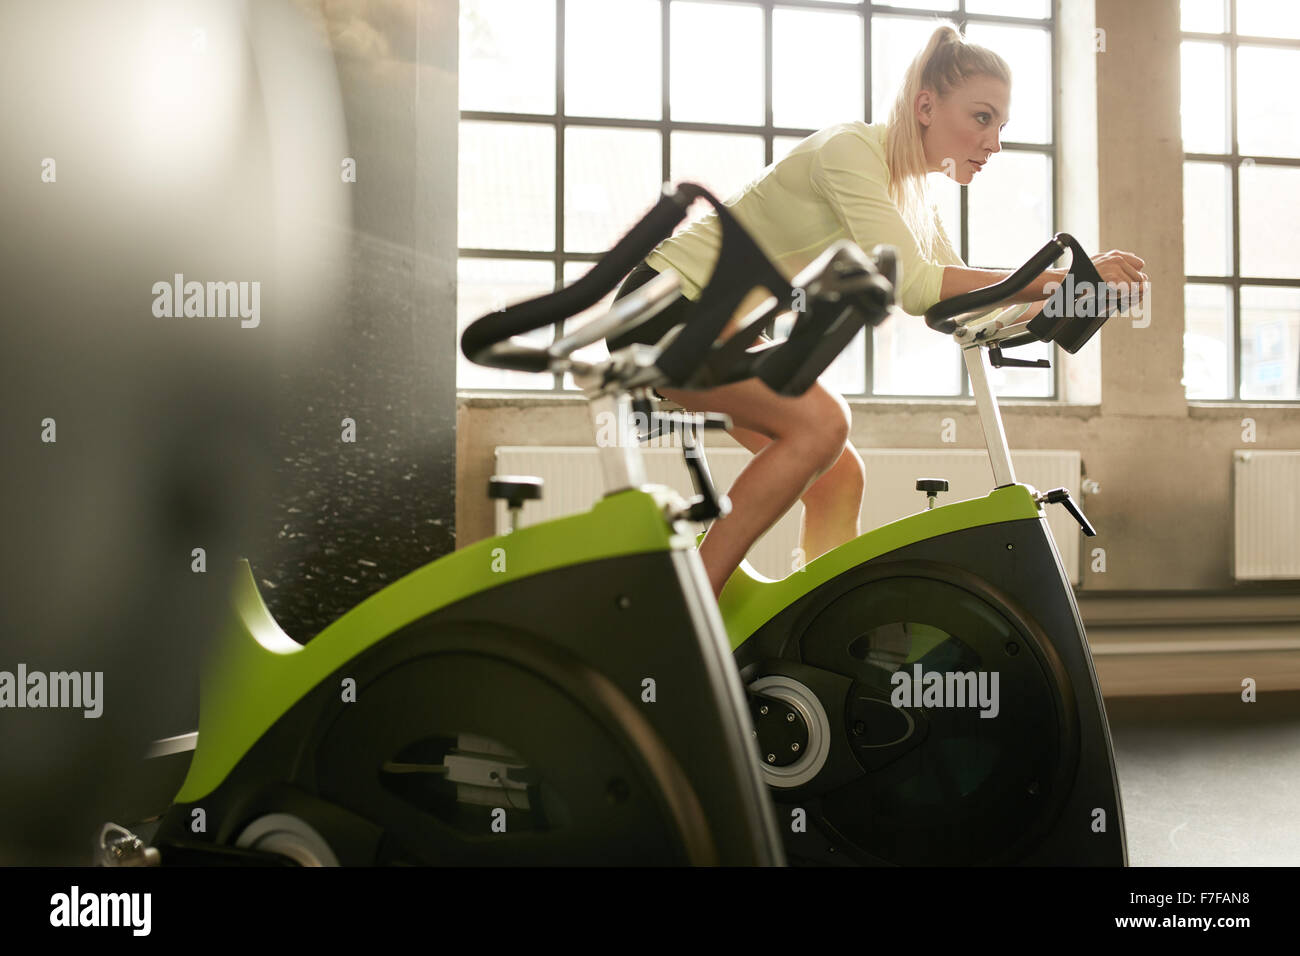 Fit woman working out on exercise bike at the gym. Indoor shot of a sportive woman doing fitness training on spinning - Stock Image